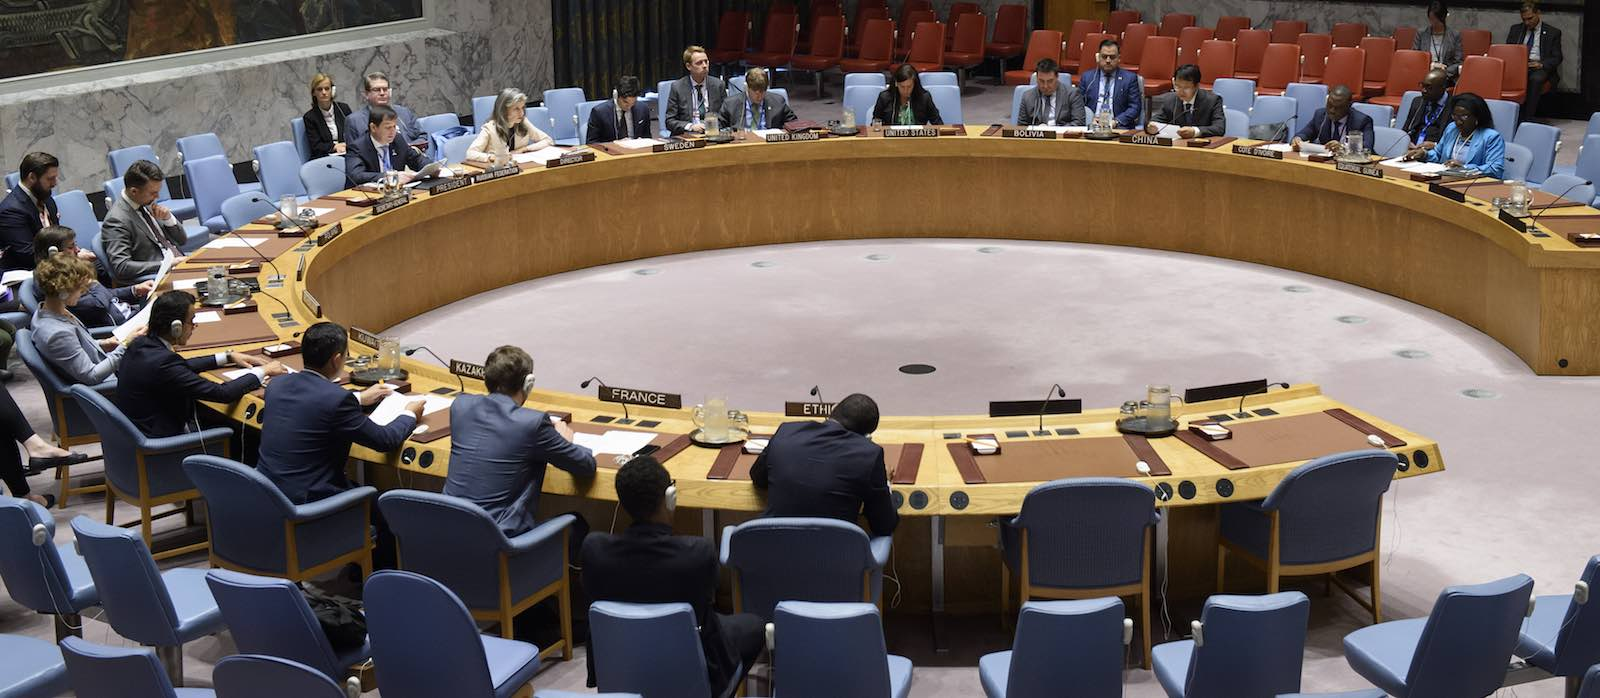 The United Nations Security Council meets in New York on 7 June (Photo: United Nations Photo)